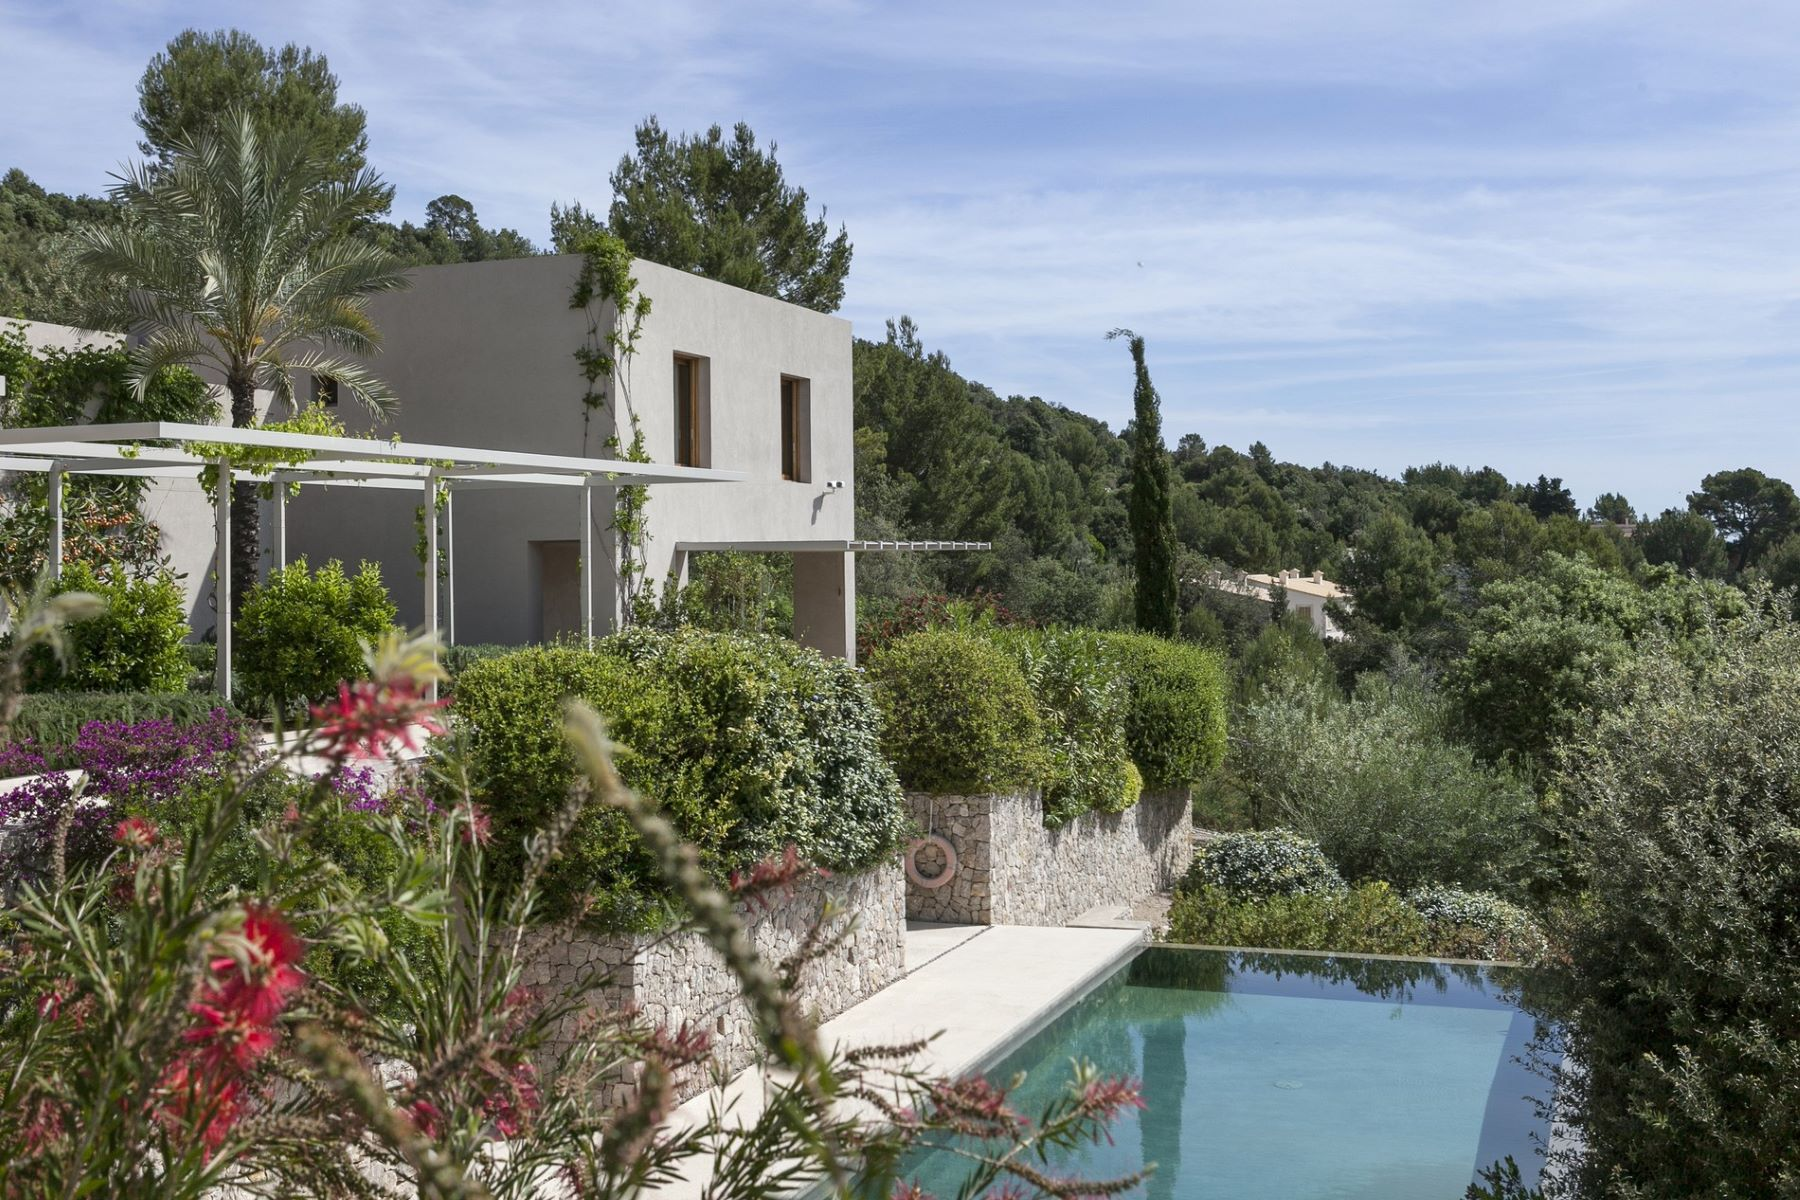 Single Family Home for Sale at Unique designer house in Pollensa Pollensa, Mallorca, Spain